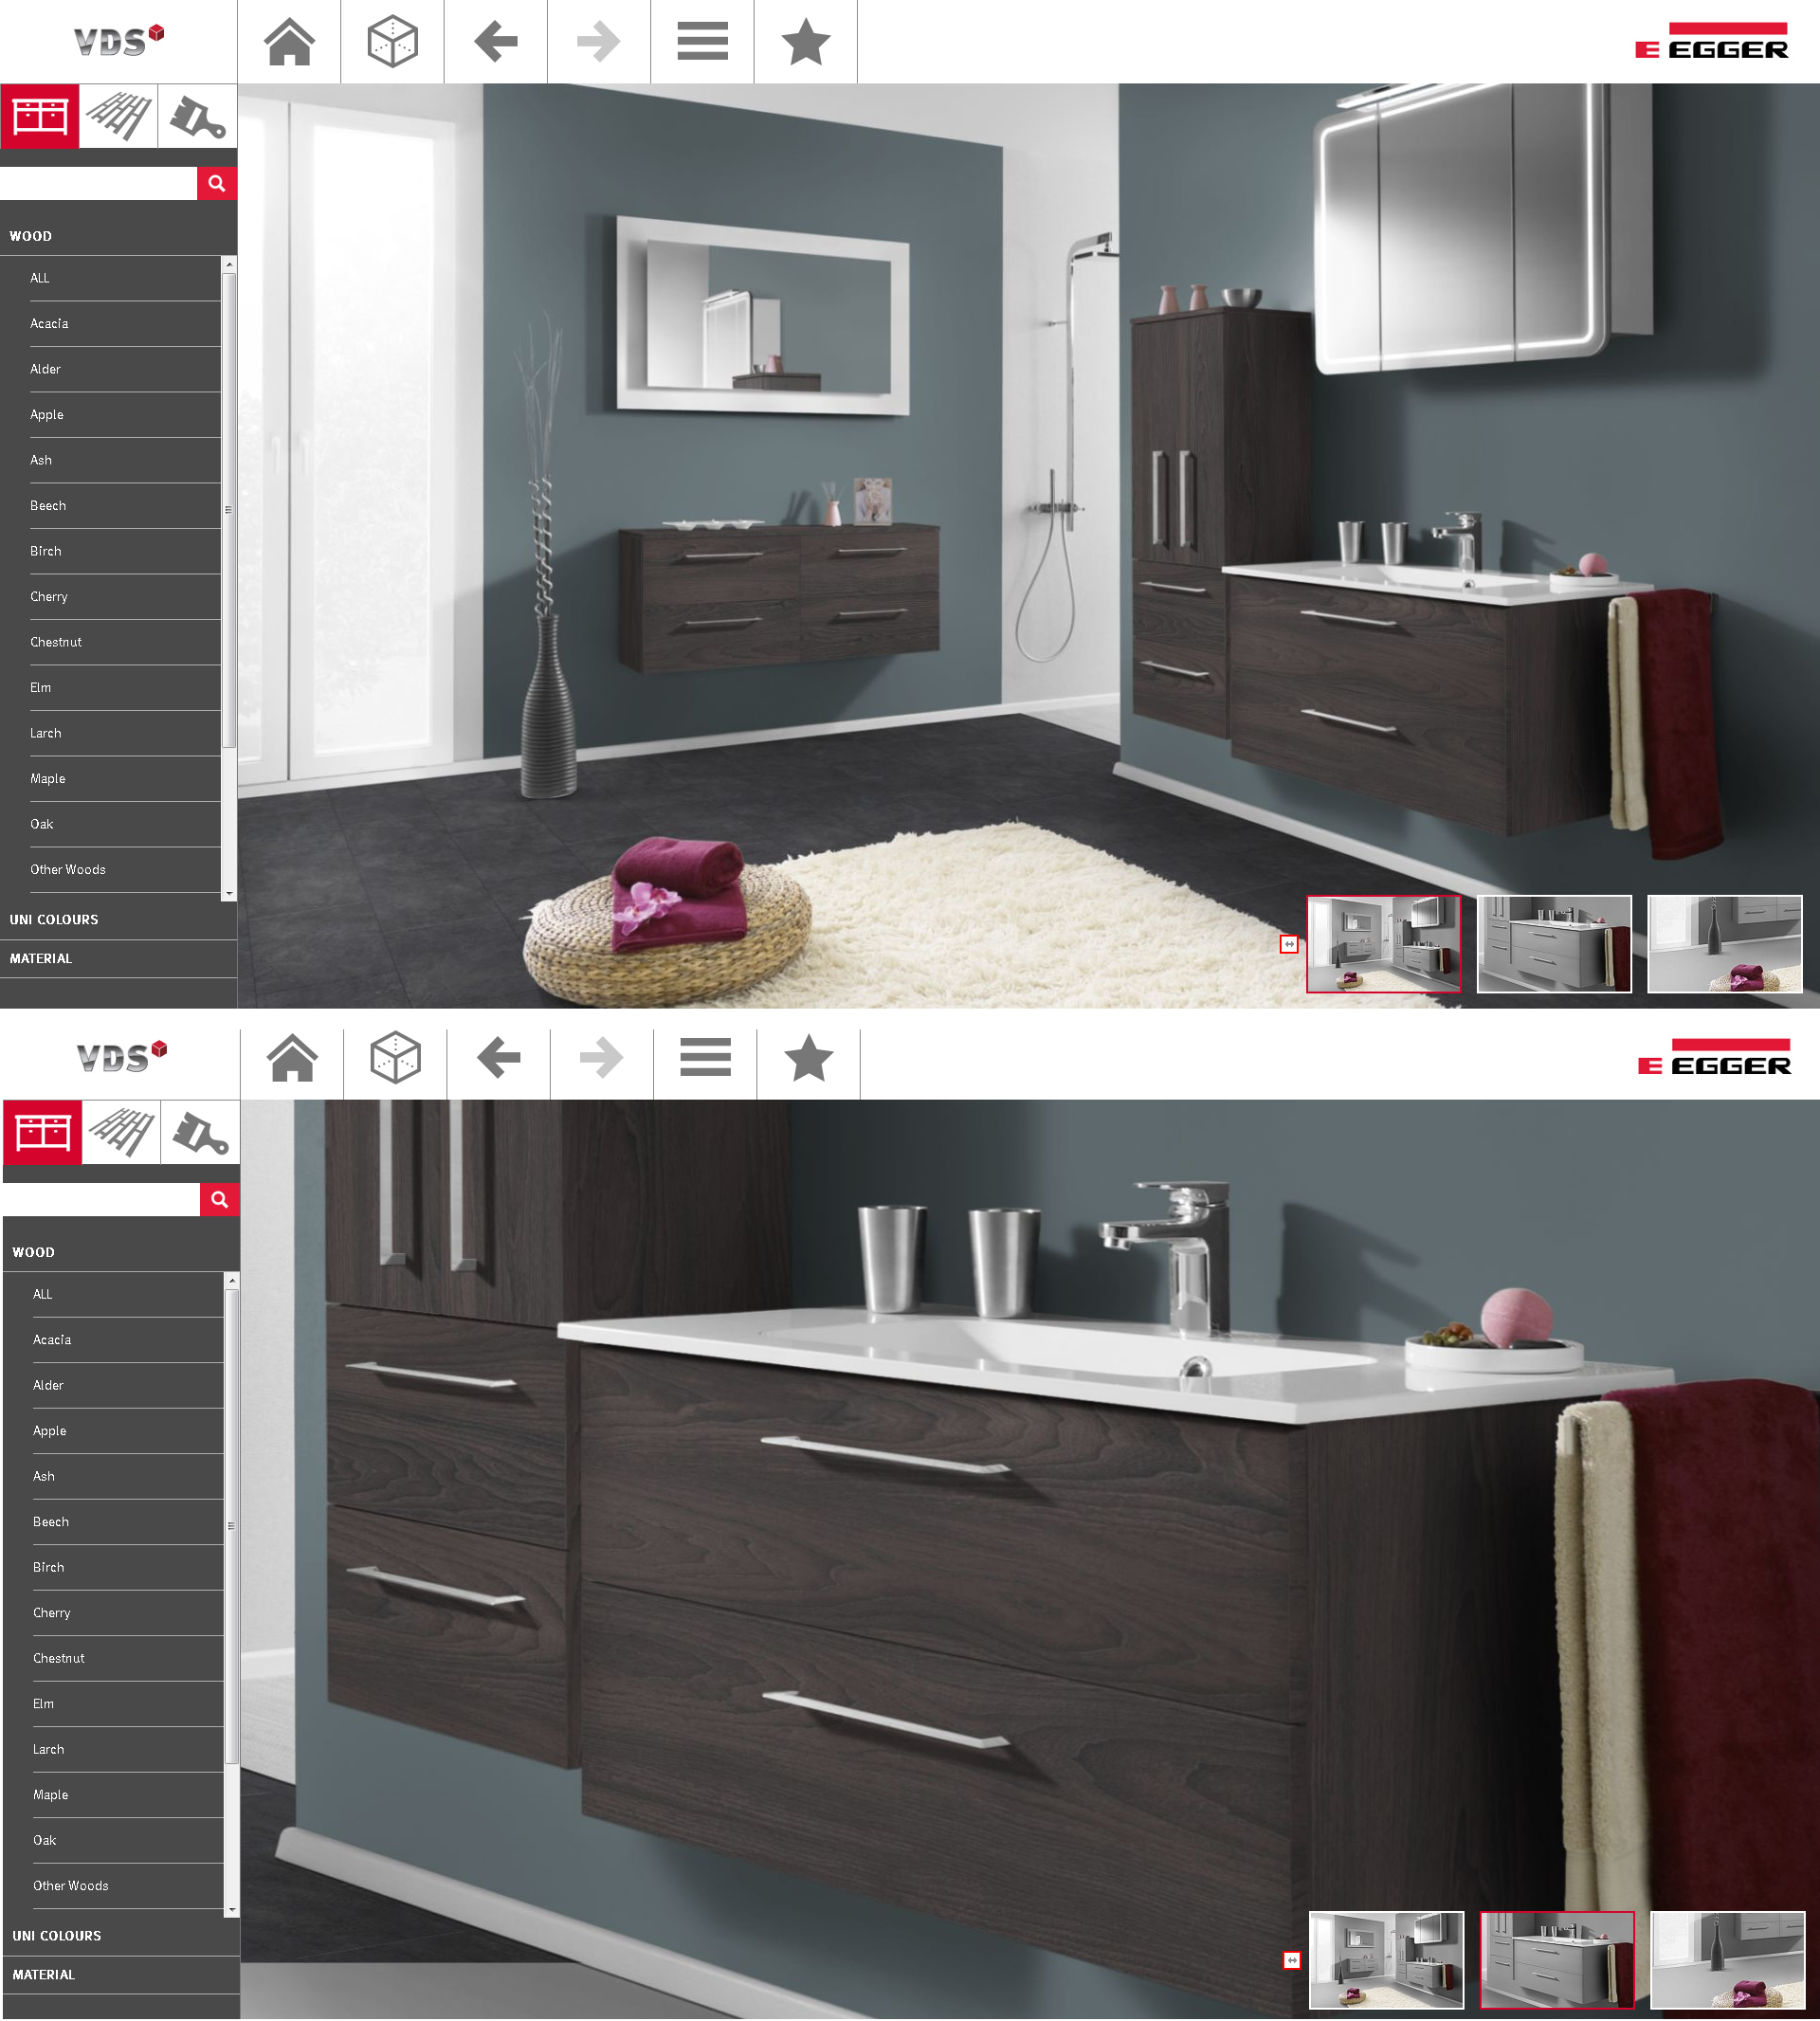 Bathroom Design Visualiser within our online visualiser, we have a bathroom roomset which can